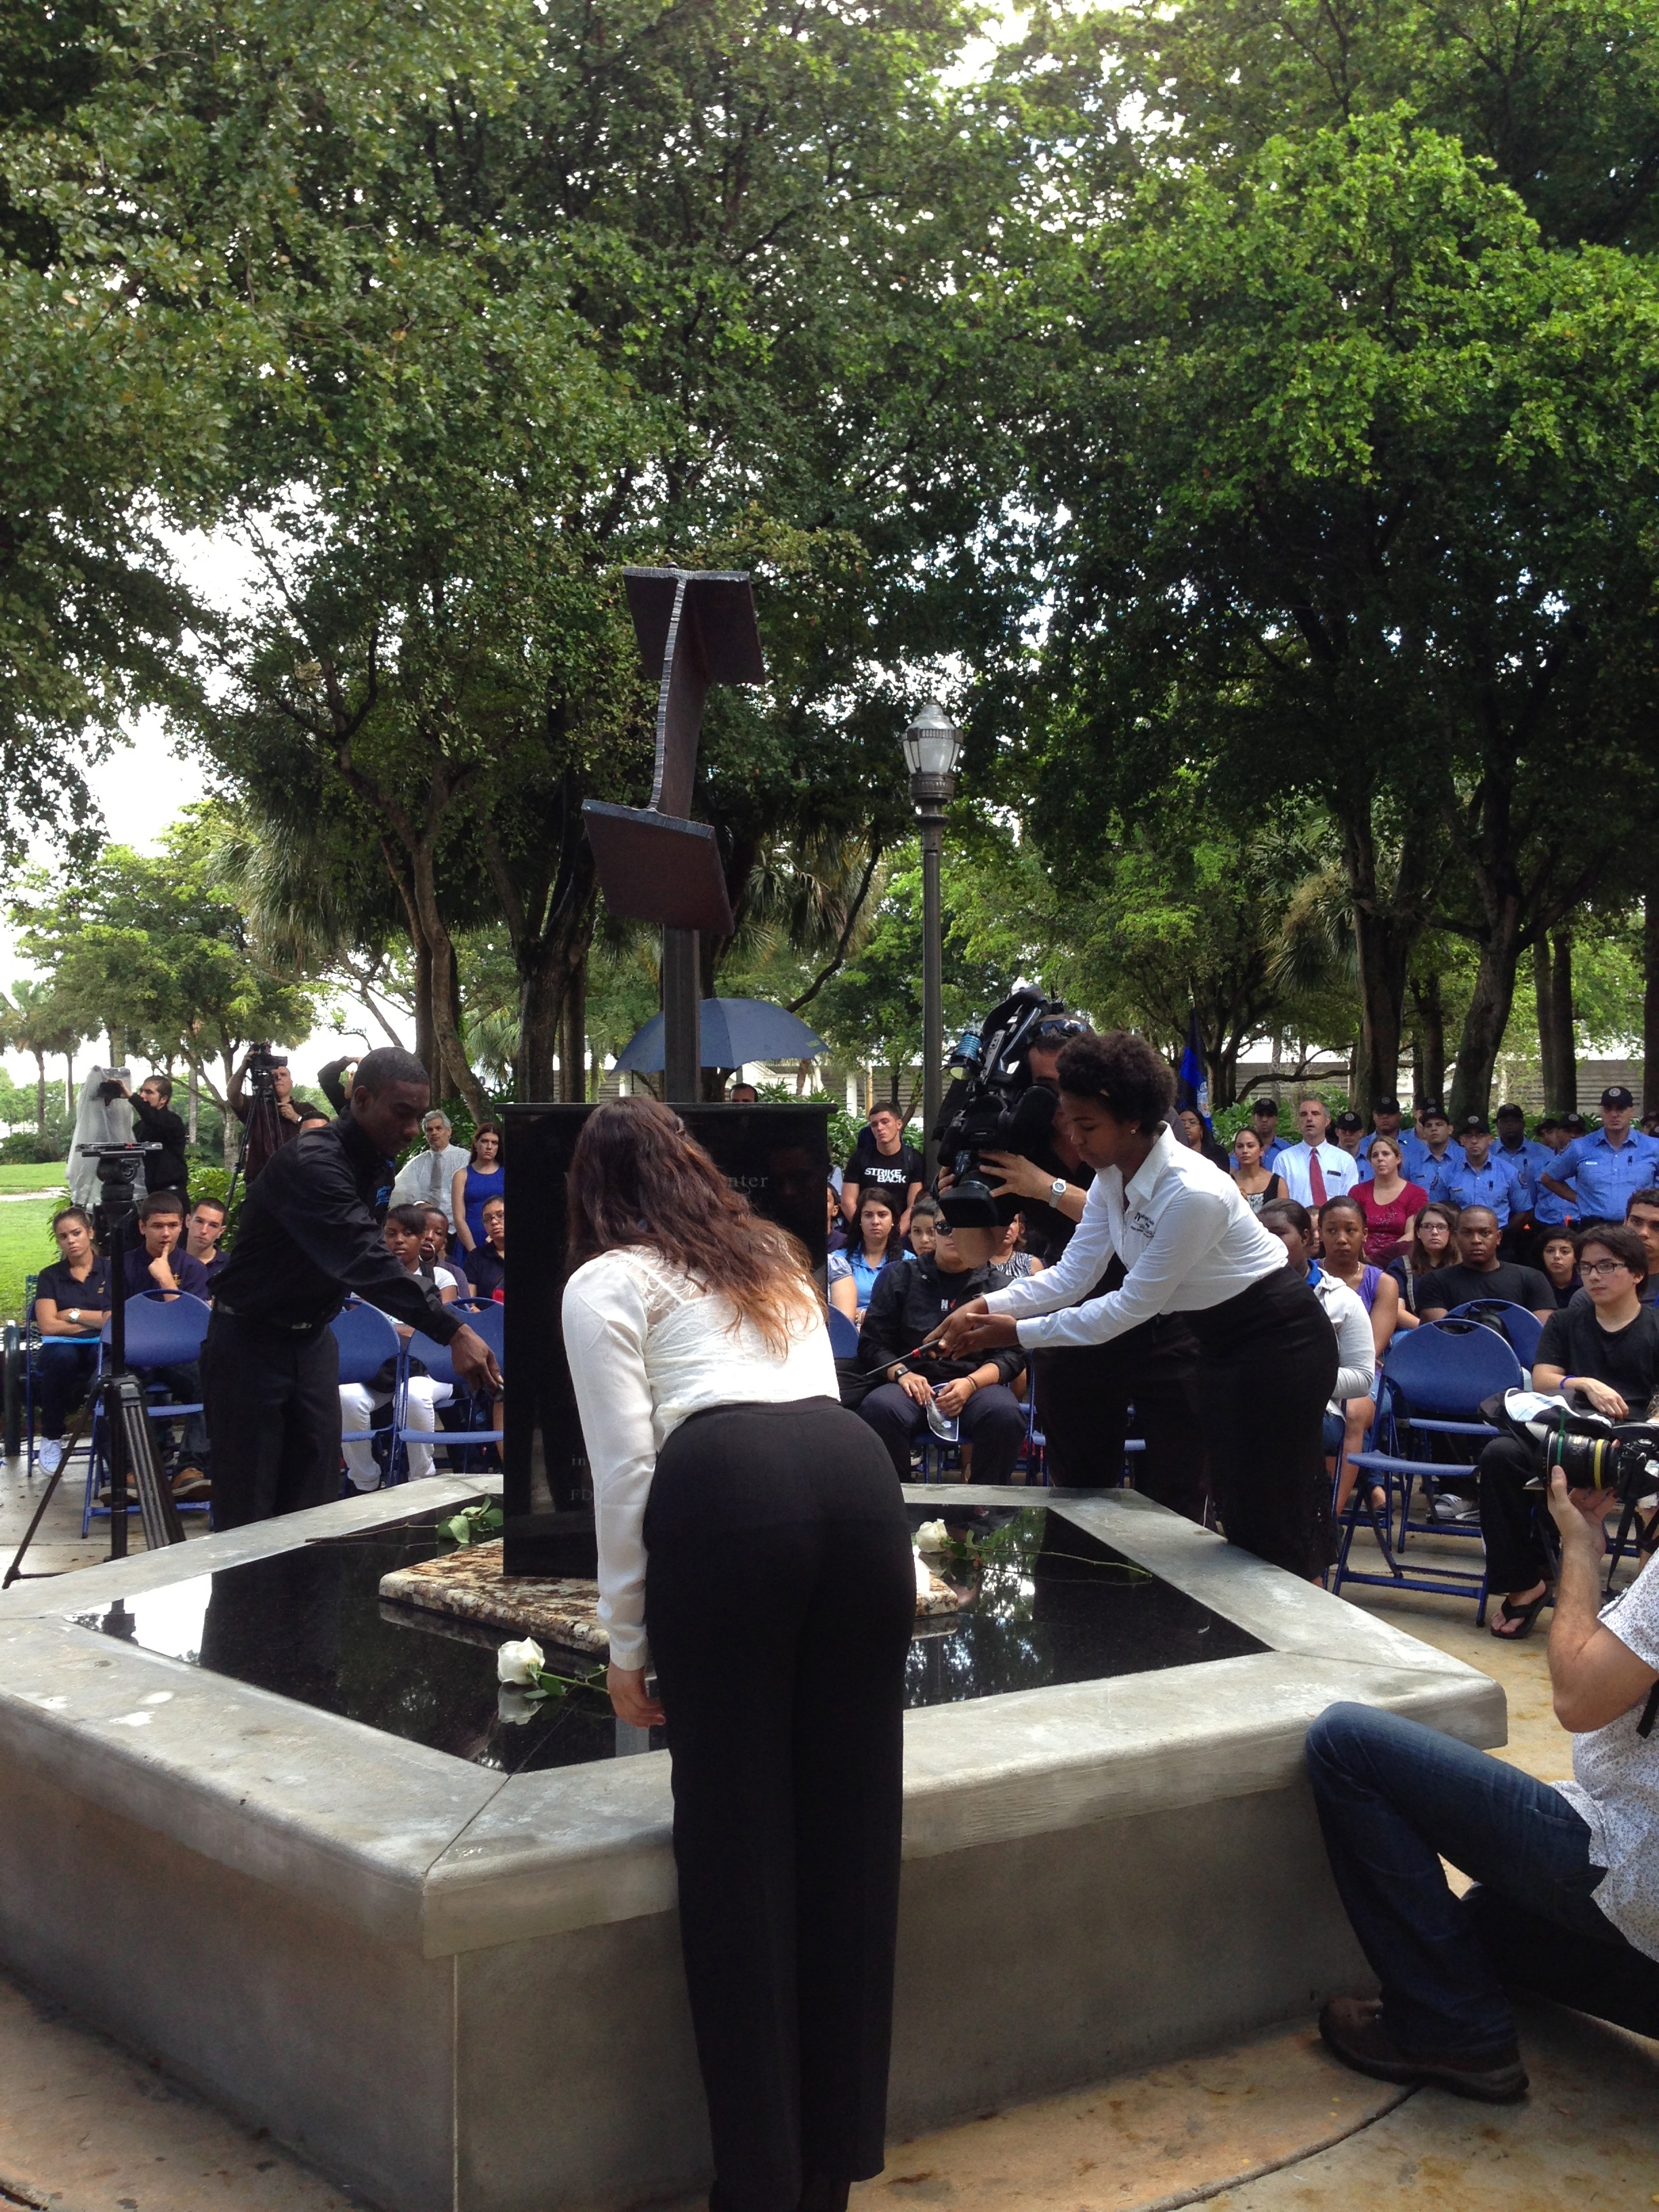 North Campus Of Miami-Dade College Unveils 9/11 Memorial | WLRN